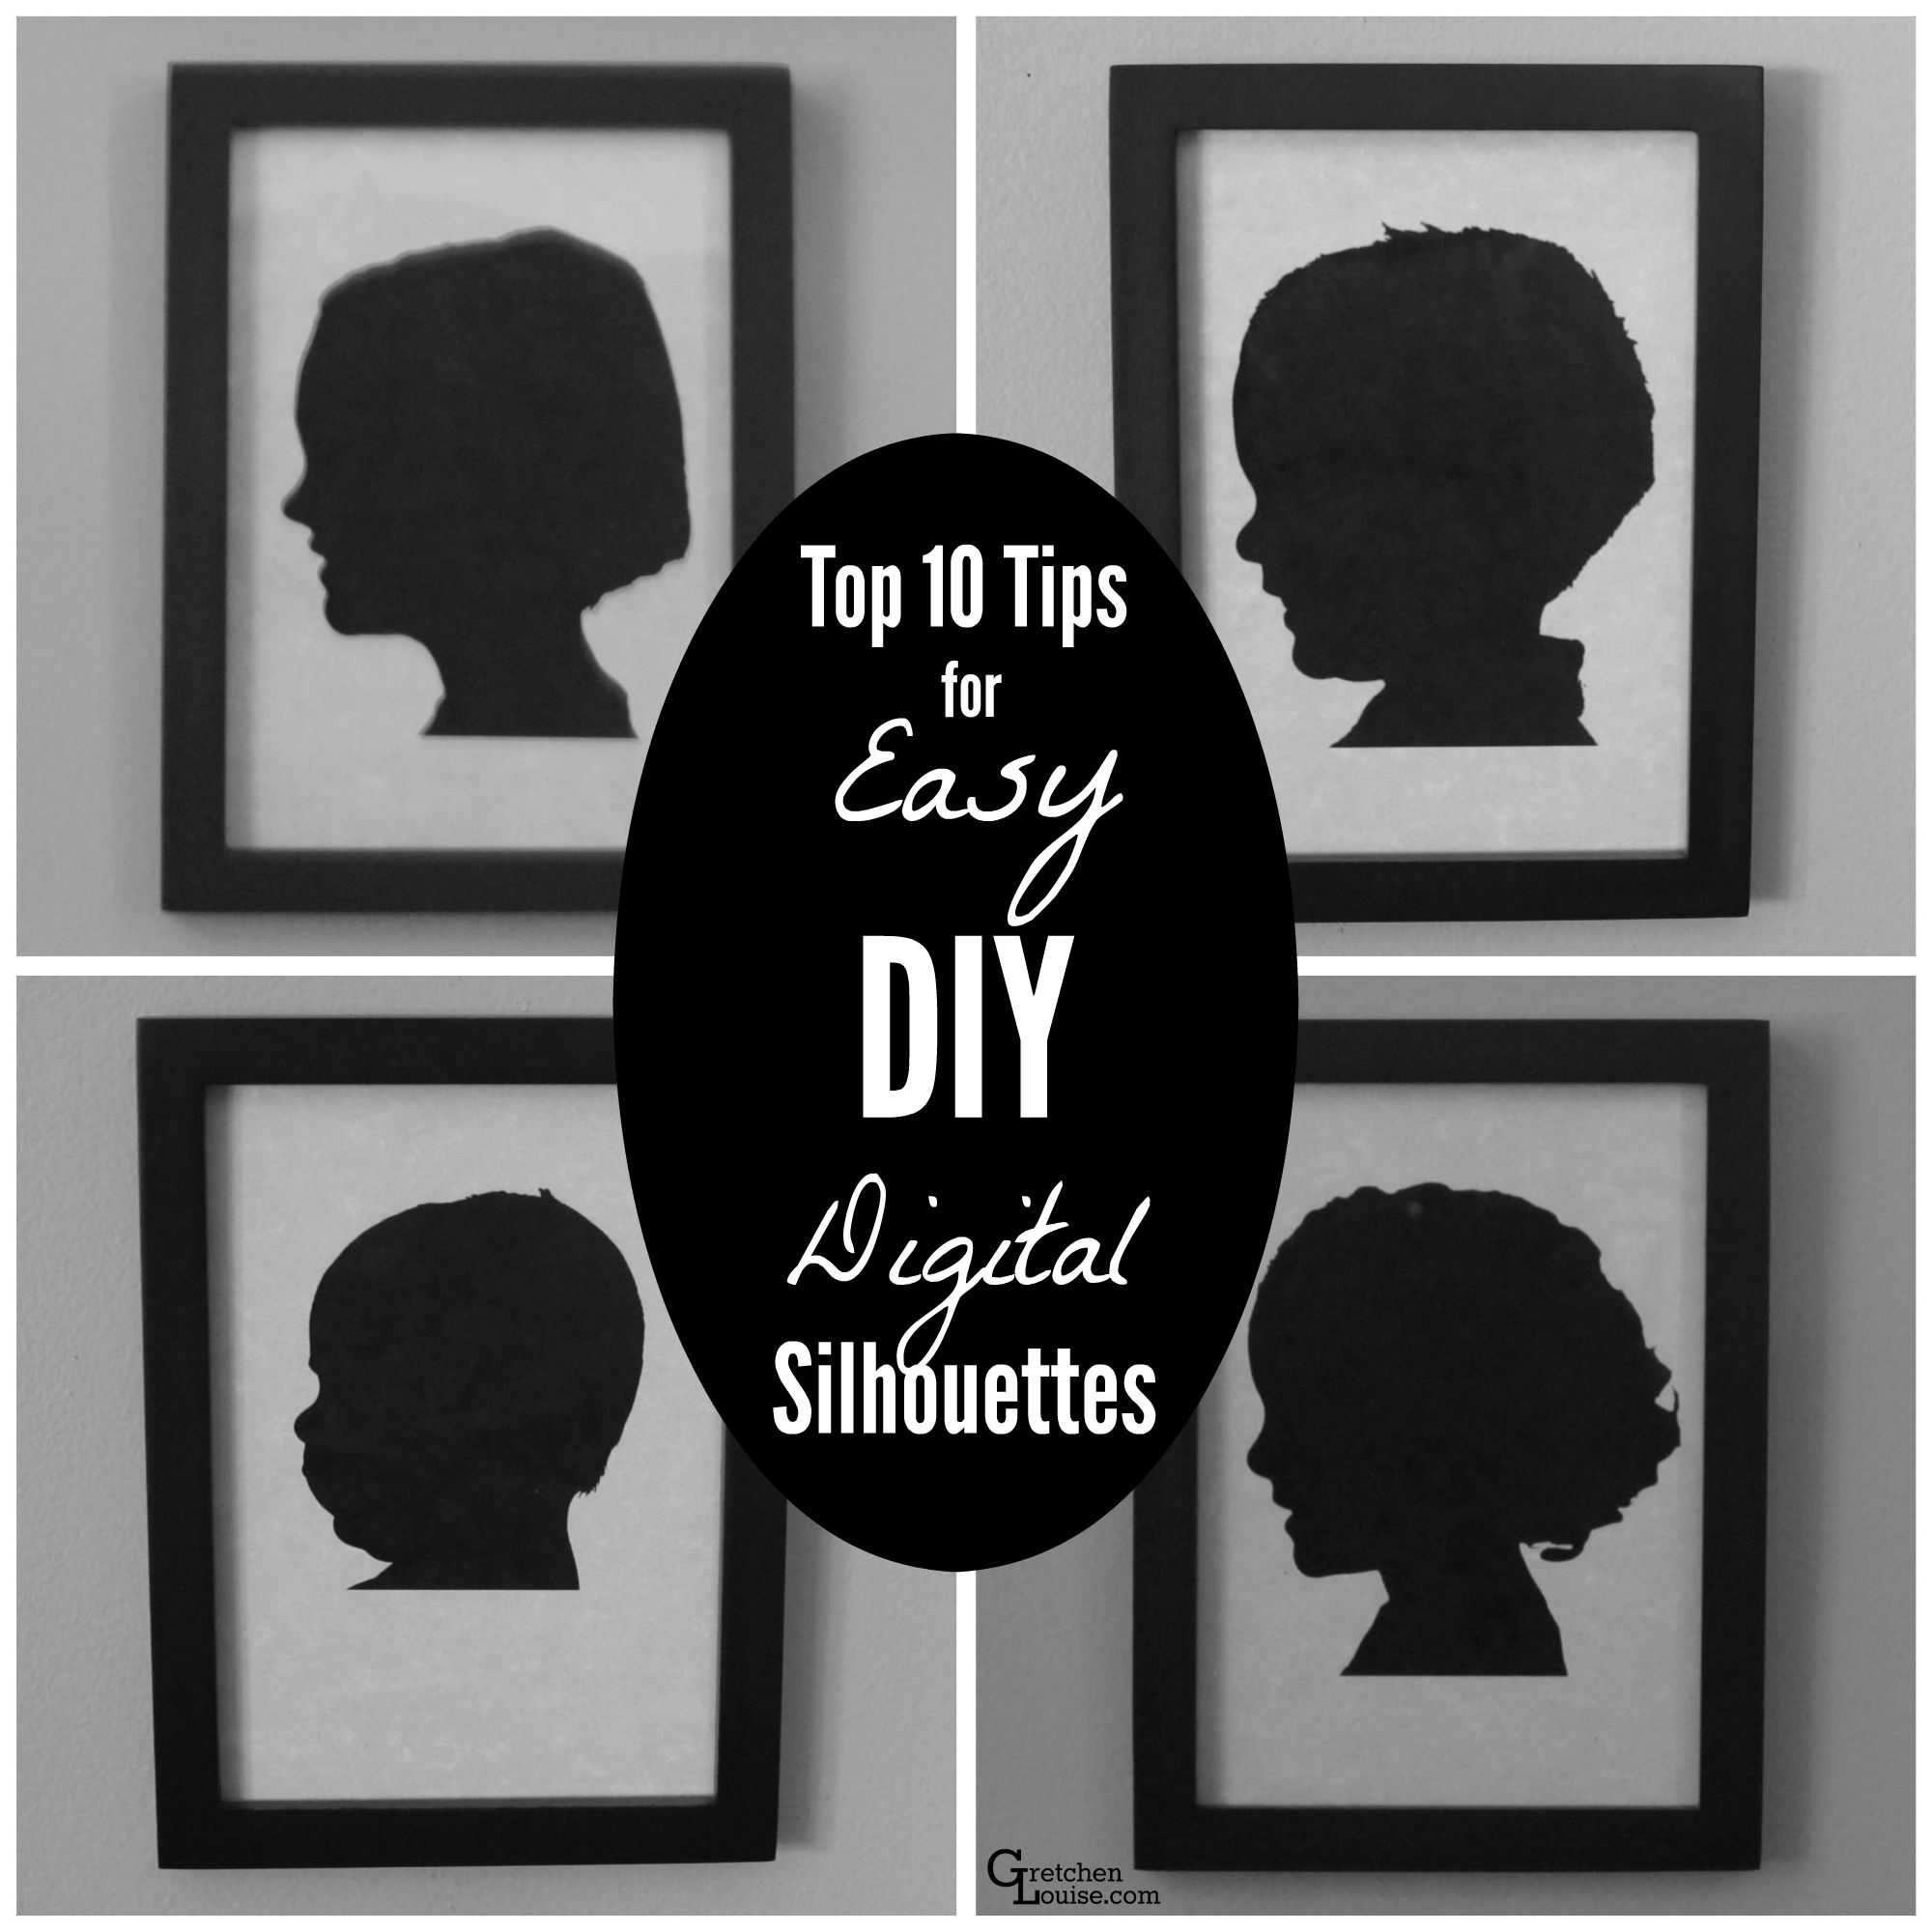 diy halloween silhouettes - diy (do it your self)